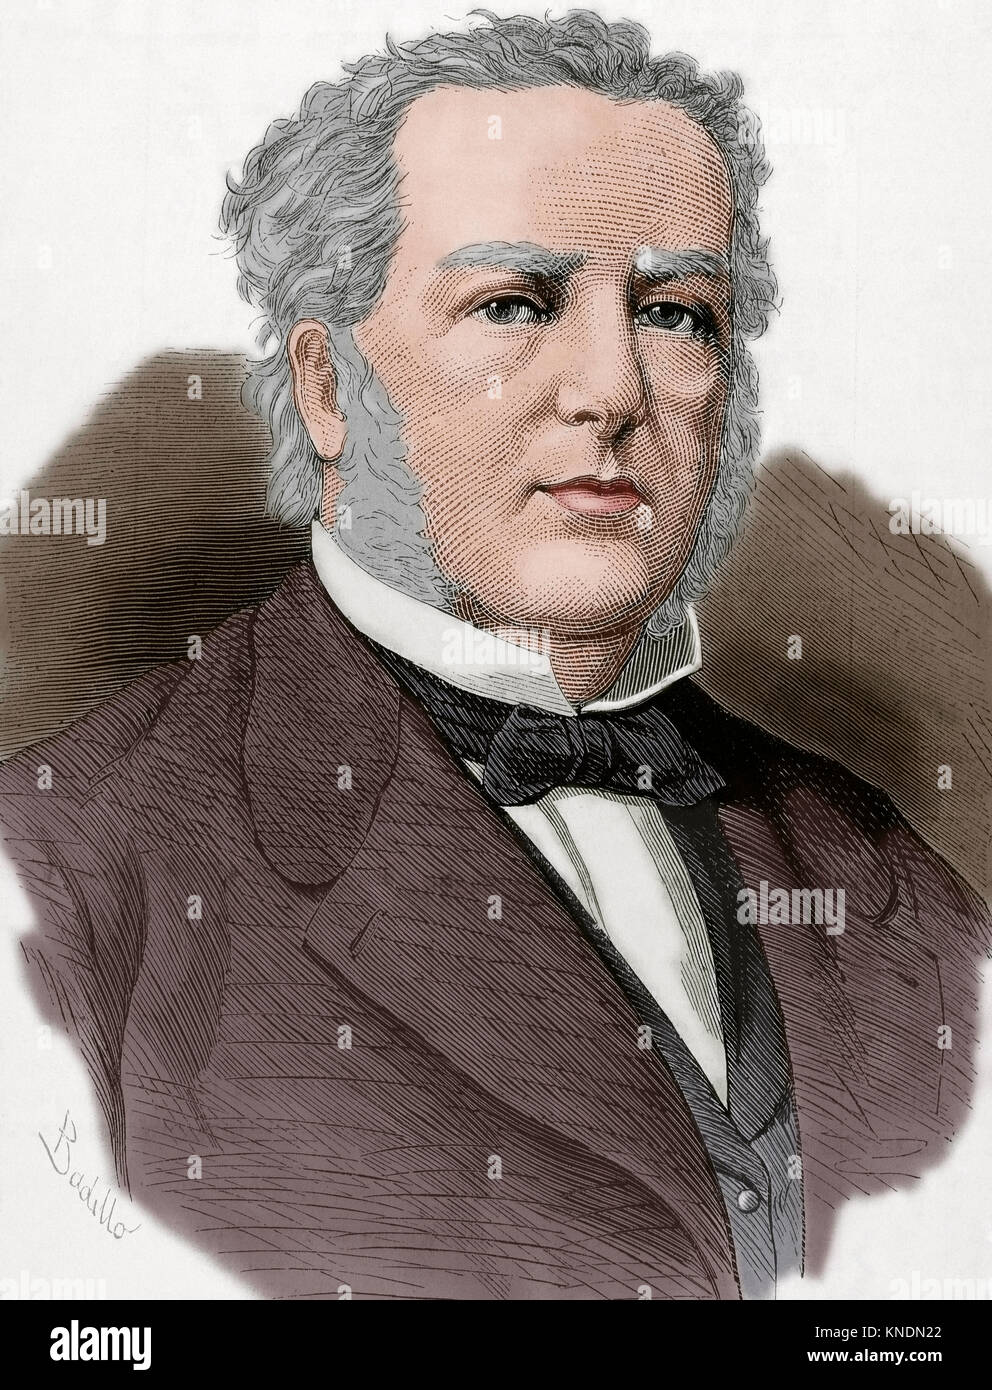 Casimir Pierre Perier (1777-1832). French banker, mine owner, political leader and statesman. Portrait. Engraving. - Stock Image